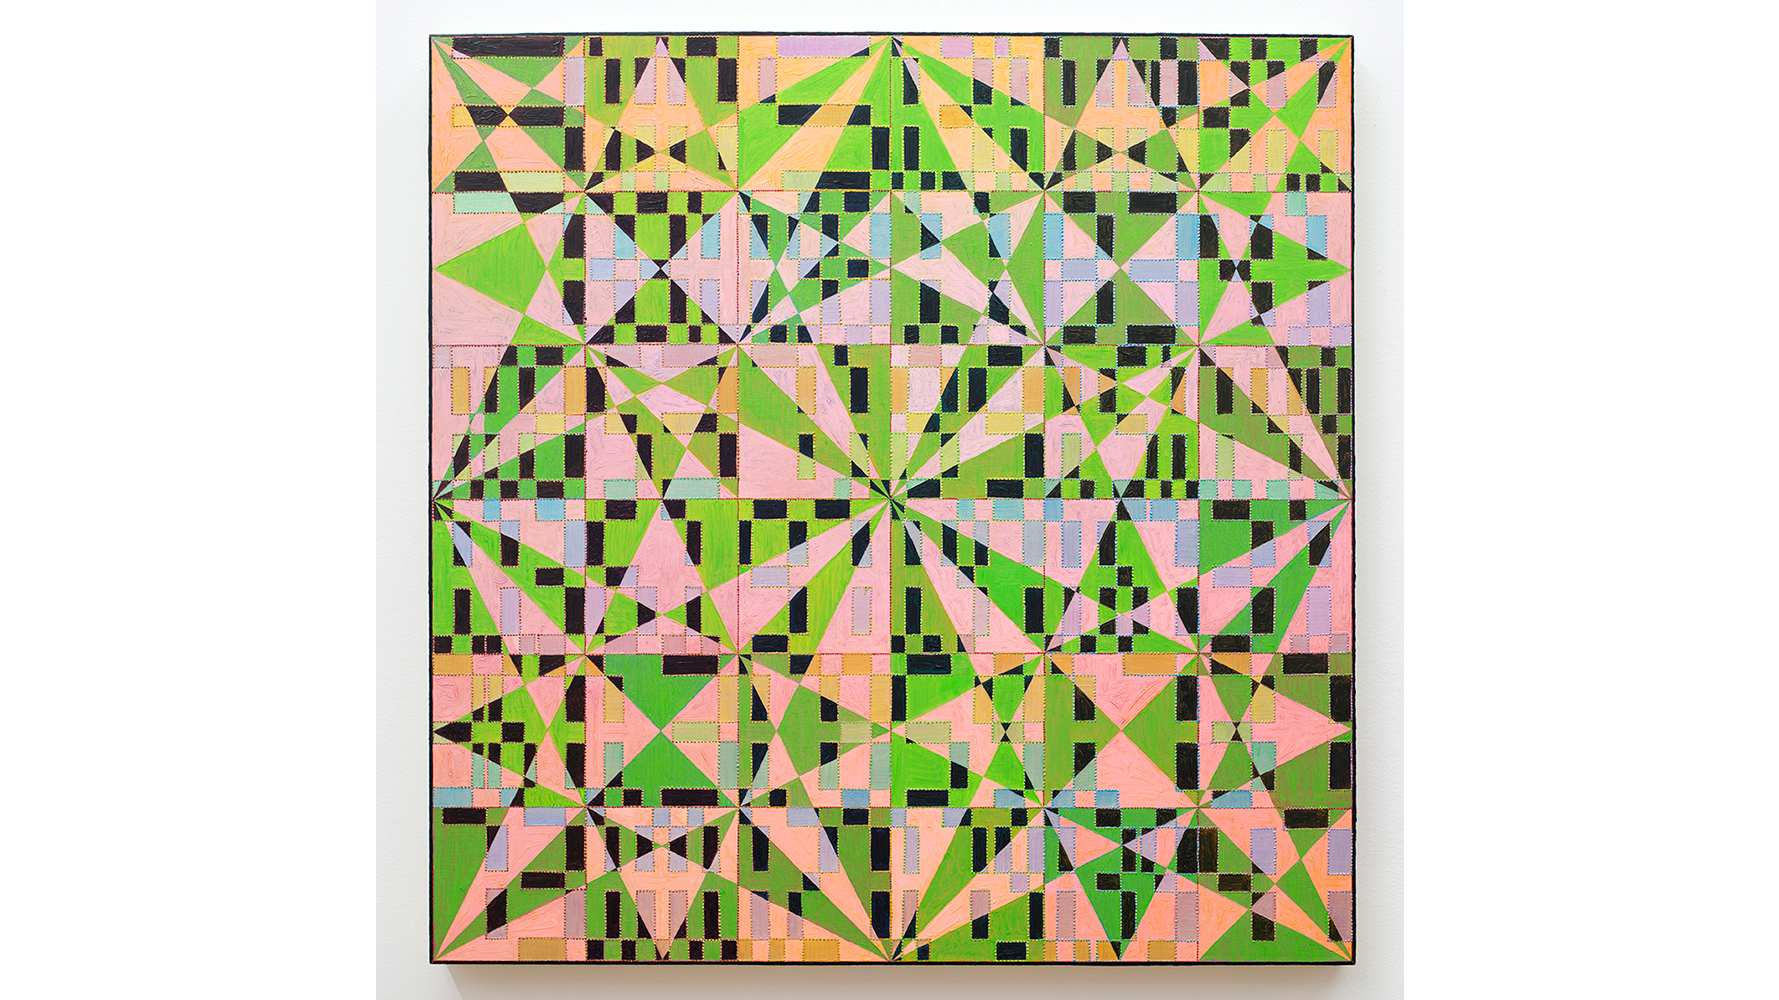 Xylor Jane, 6th Order Magic Square for the Beast, 2015